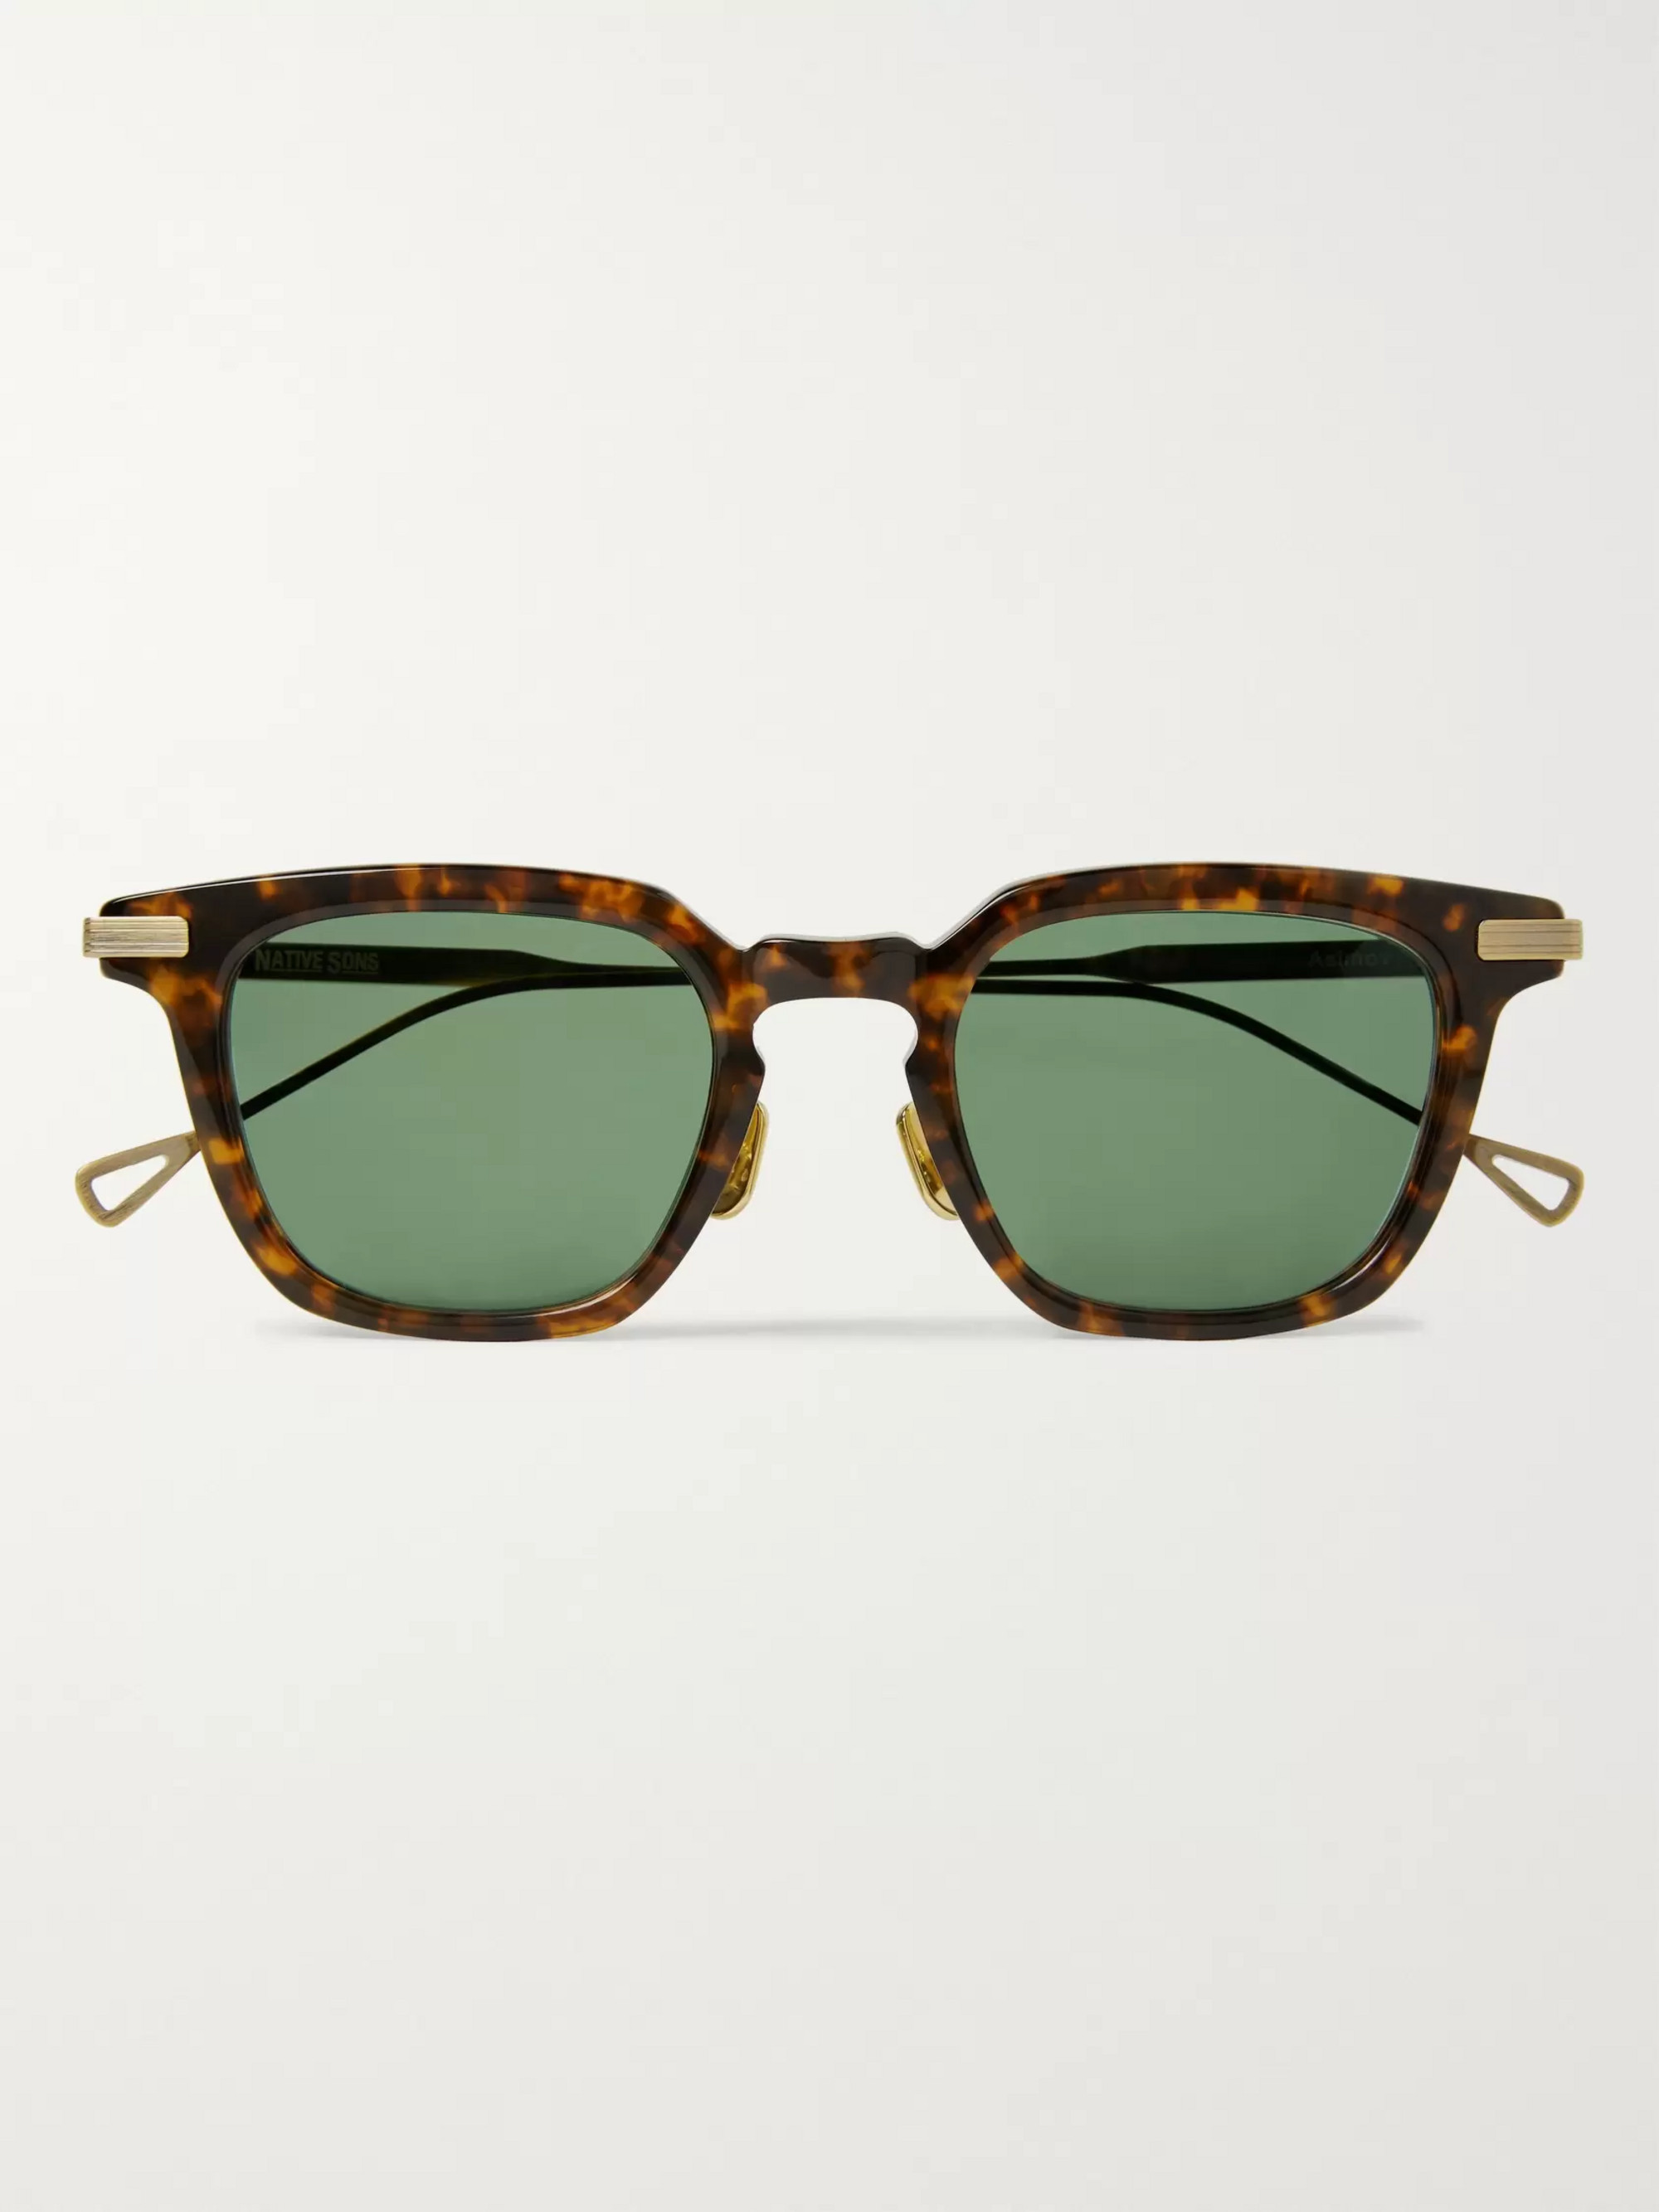 Native Sons Asimov Square-Frame Tortoiseshell Acetate and Gold-Plated Sunglasses